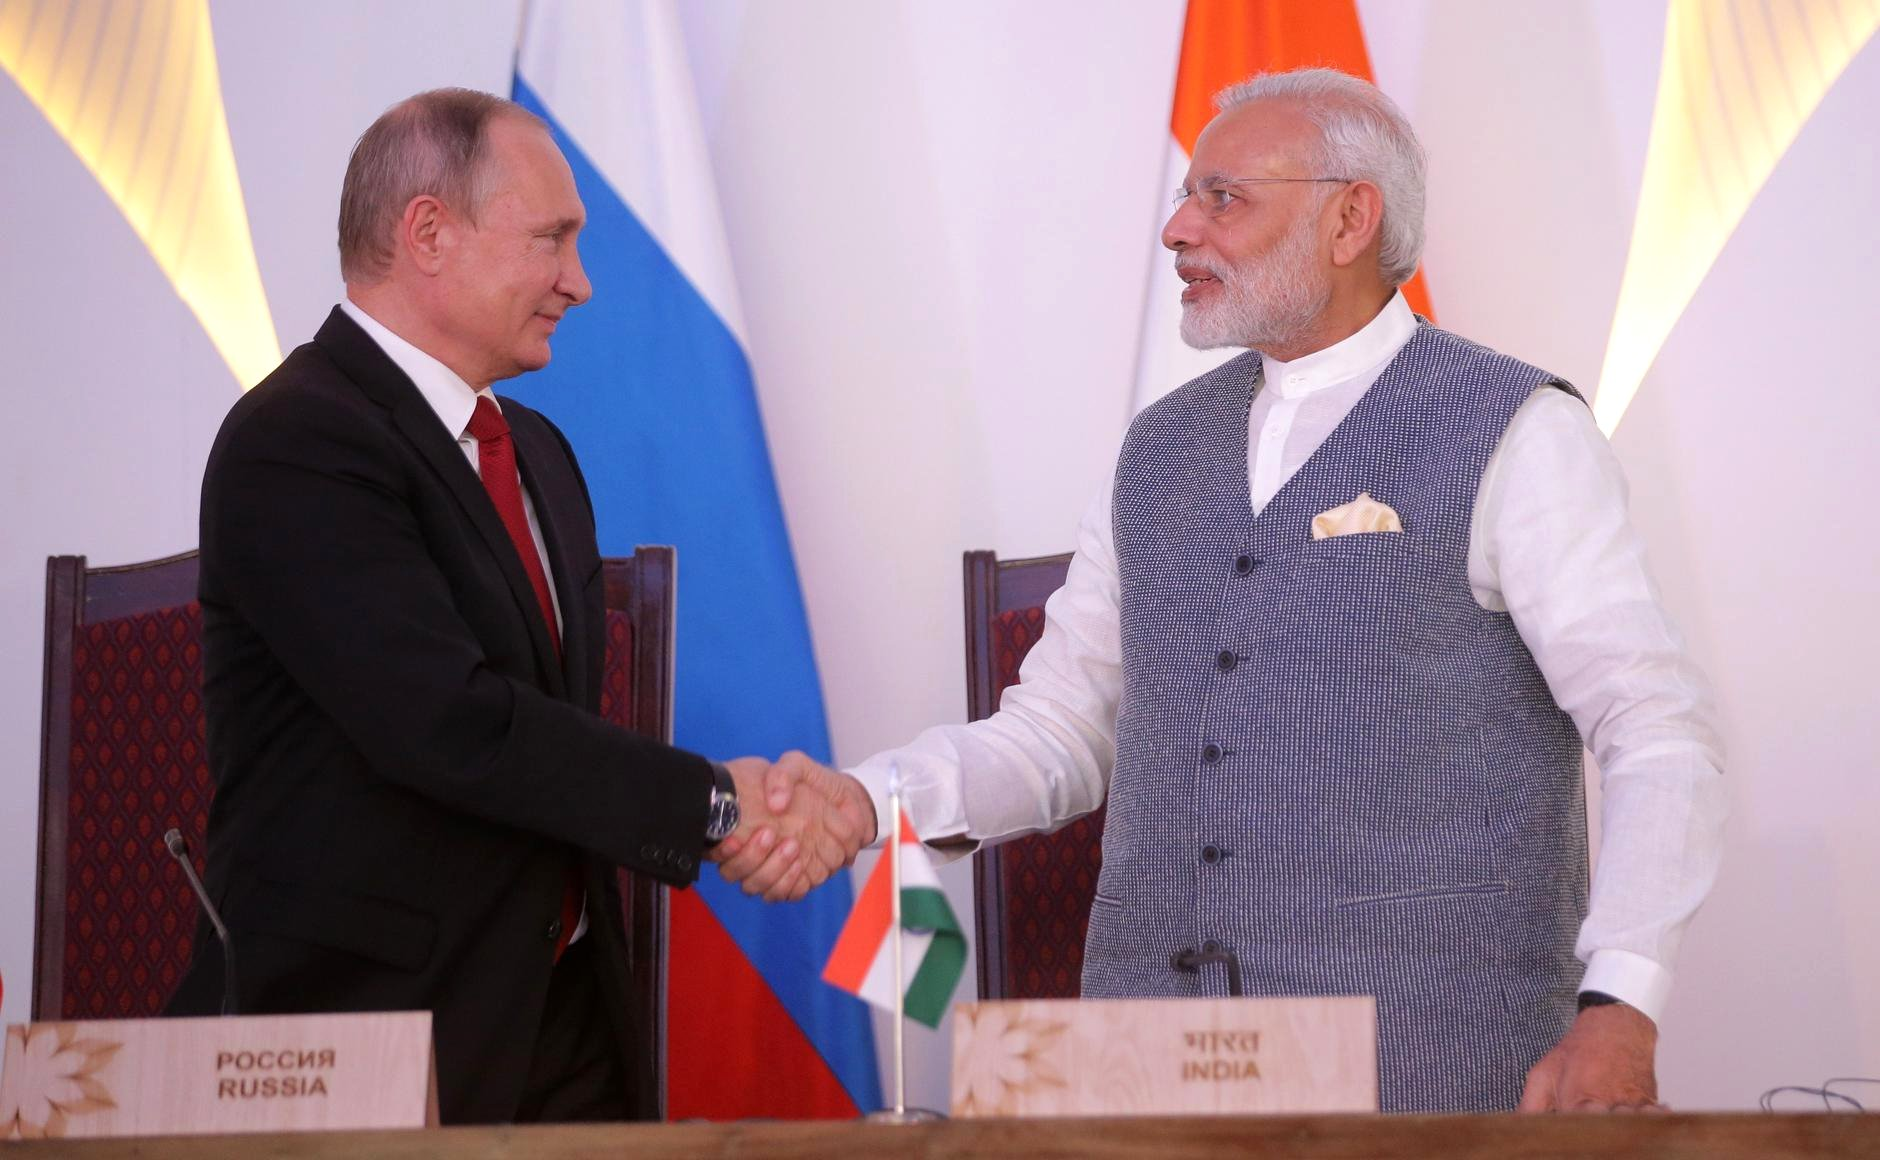 File:President Putin and Prime Minister Modi shake hands at the signing of Russian-Indian documents.jpg - Wikimedia Commons